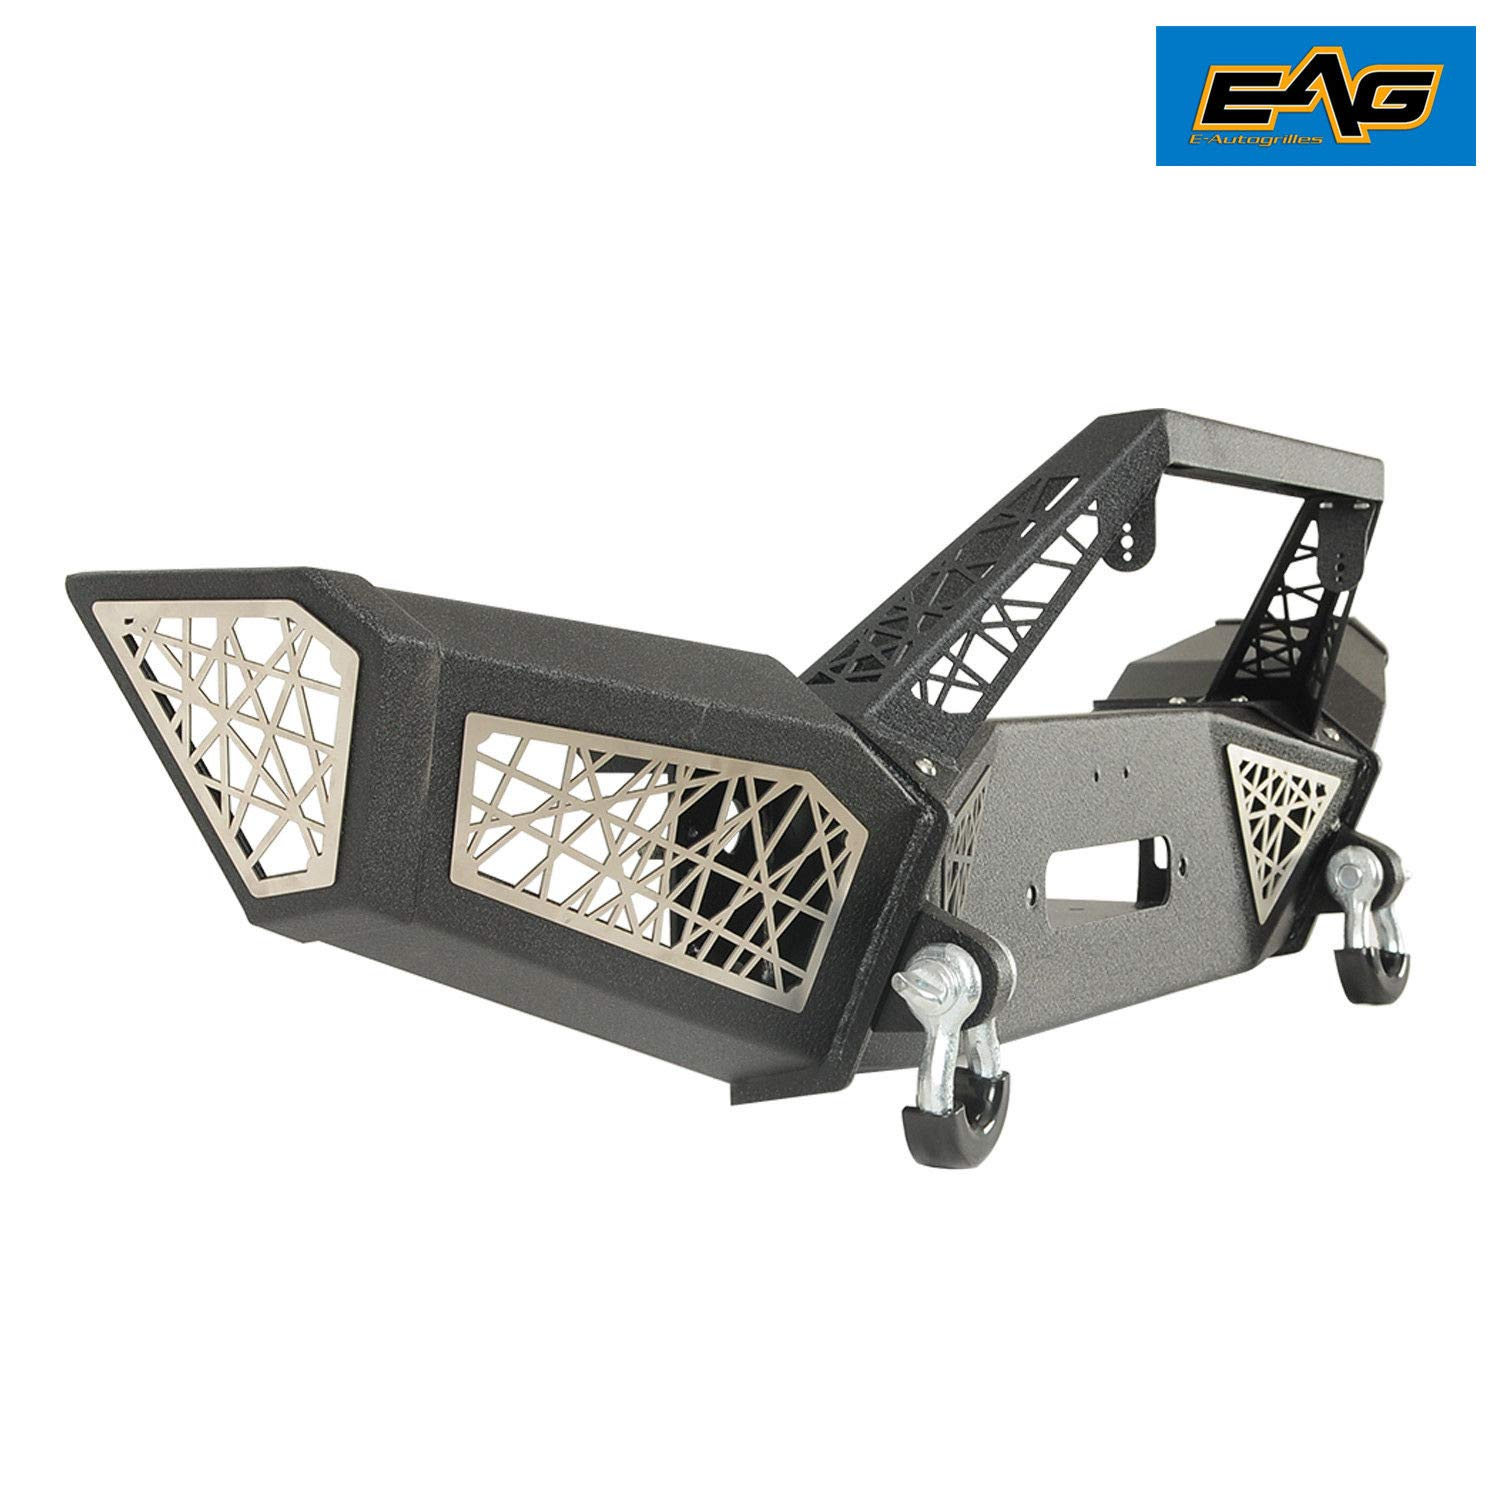 EAG Front Bumper Full Width Web with Winch Plate and D-rings Fit for 07-18 Jeep Wrangler JK